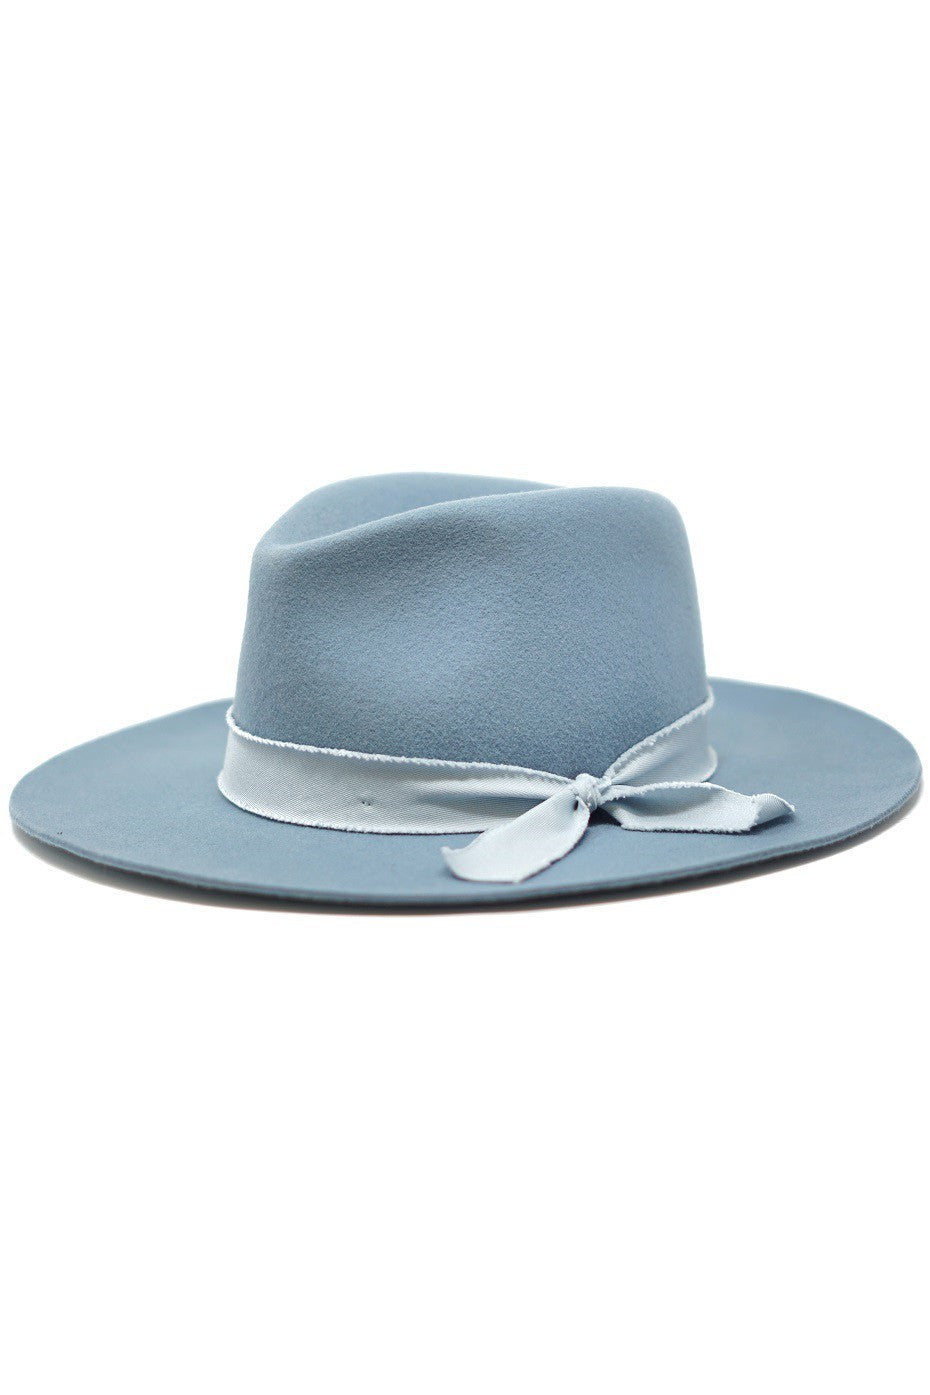 Sawyer Wool Hat - Baby Blues